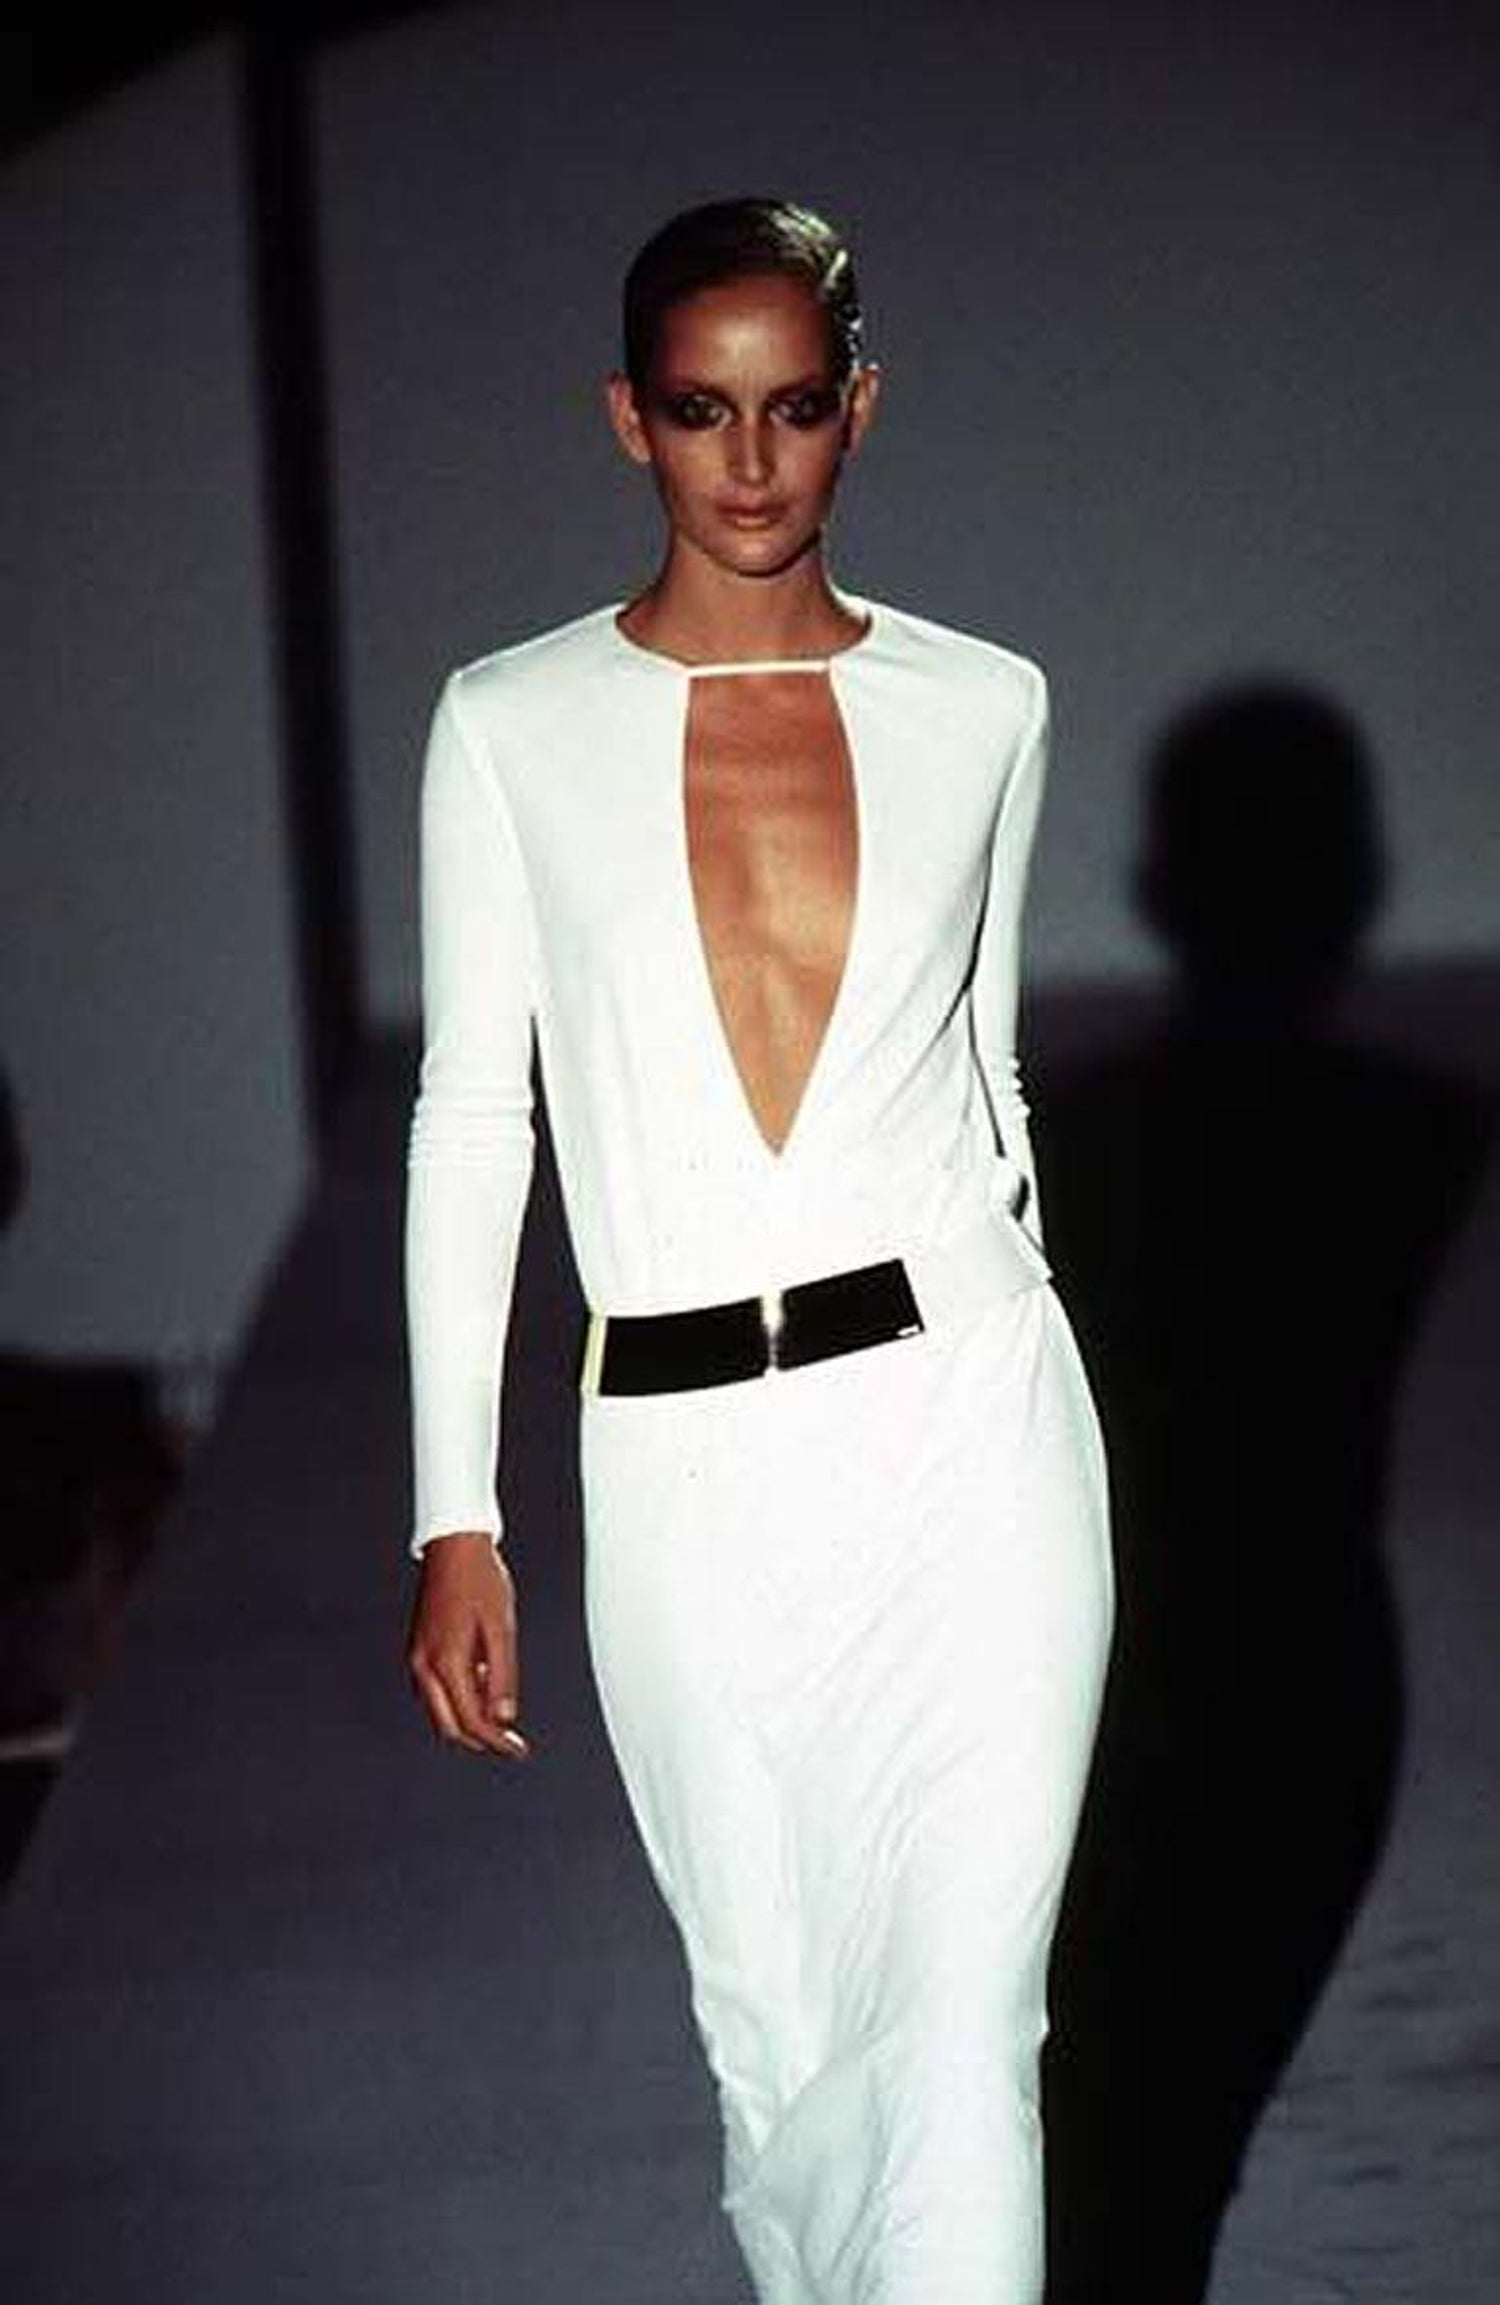 Gucci by Tom Ford Iconic 1996 Halston Inspired White Dress Gown Published For Sale at 1stdibs